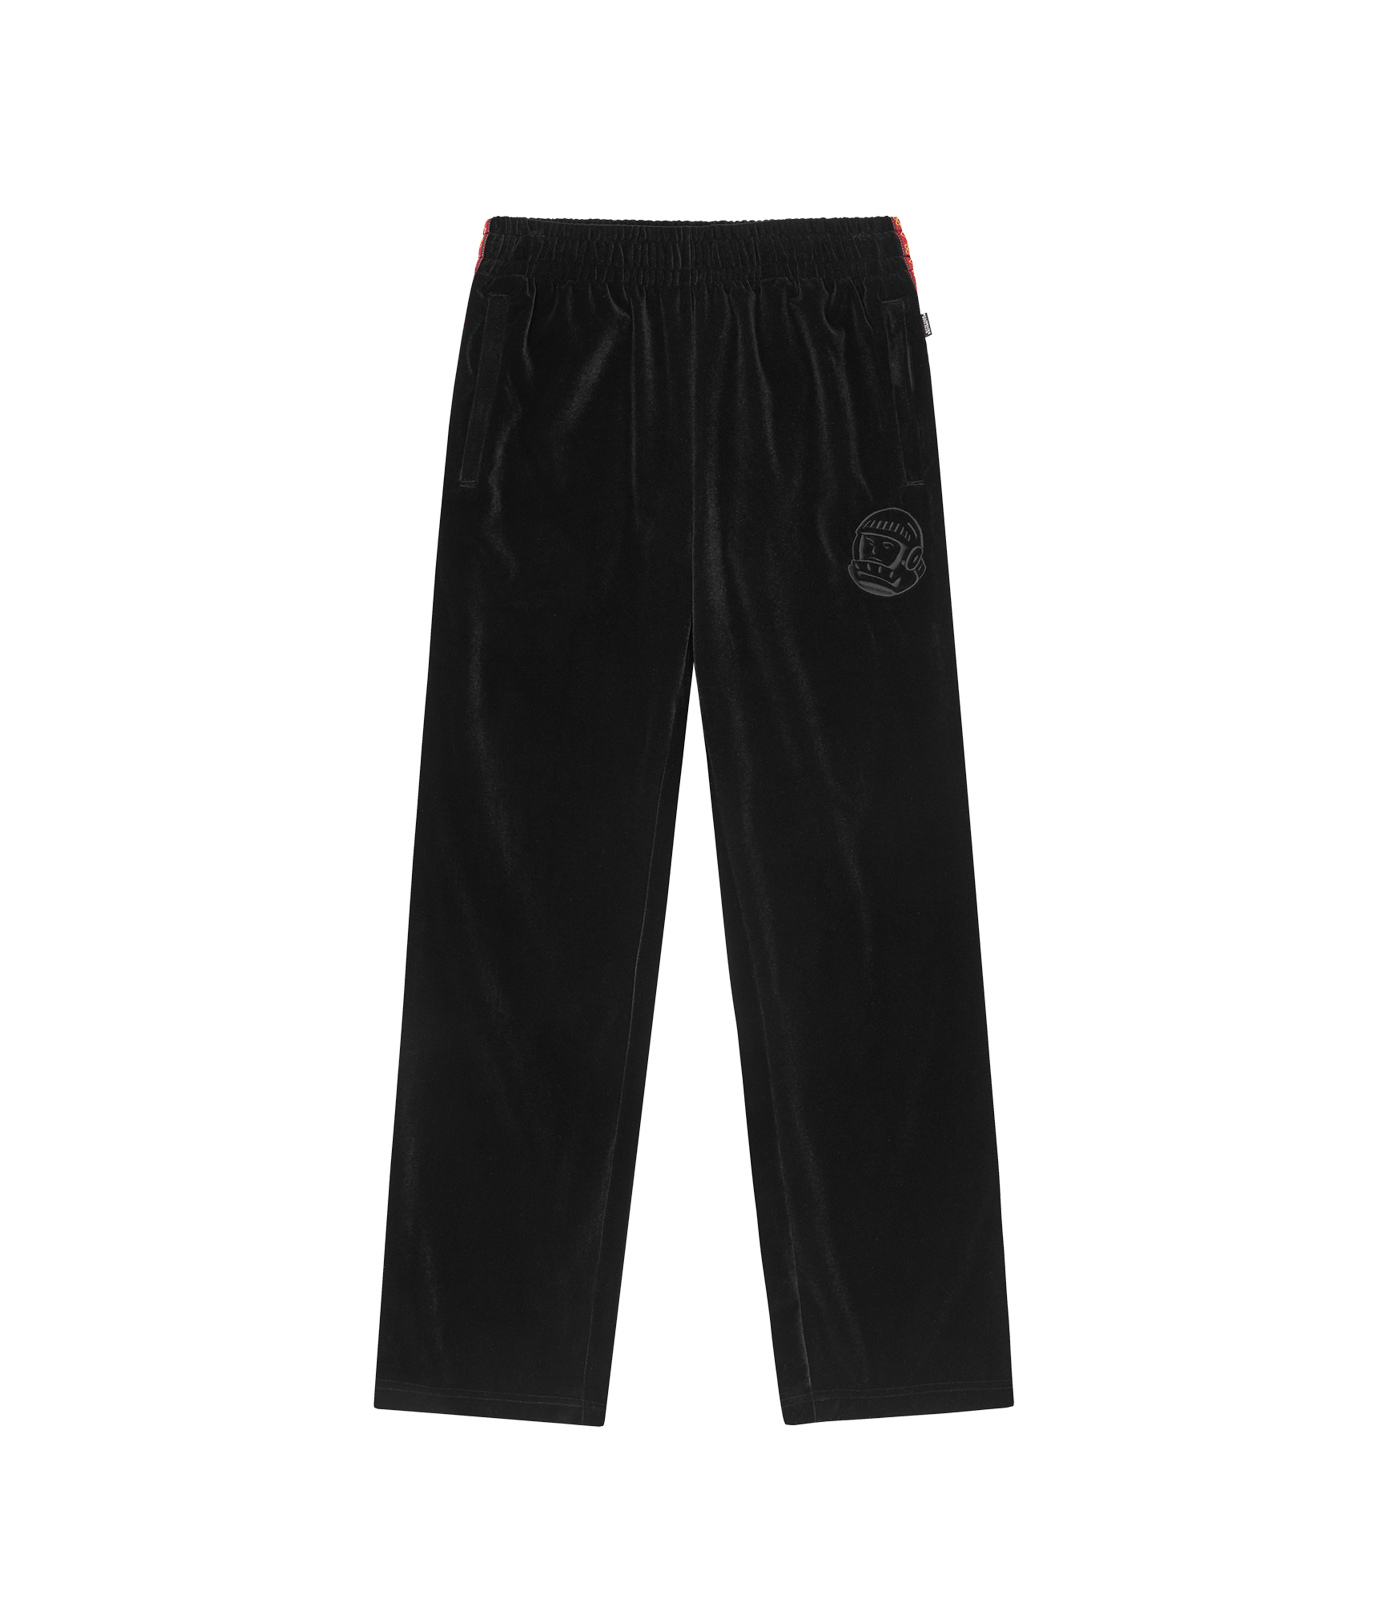 HEART & MIND TAPED JERSEY SWEATPANT - BLACK